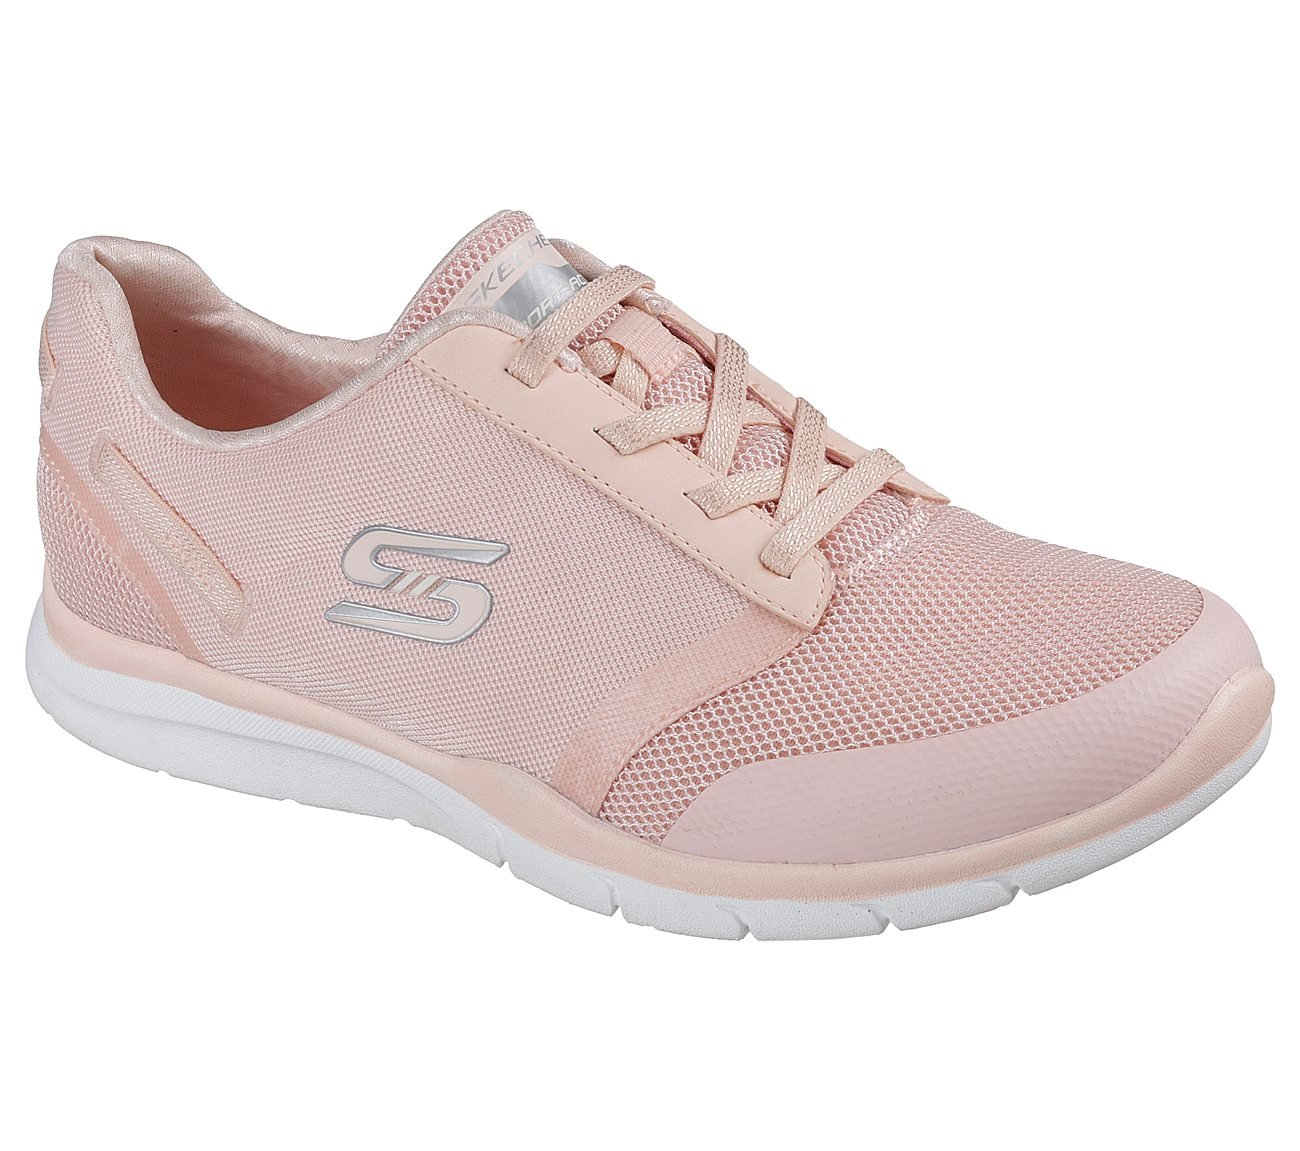 Skechers Gratis Cloud up to Speed Womens Slip On Sneakers B079RTGW8Z 5 B(M) US|Peach